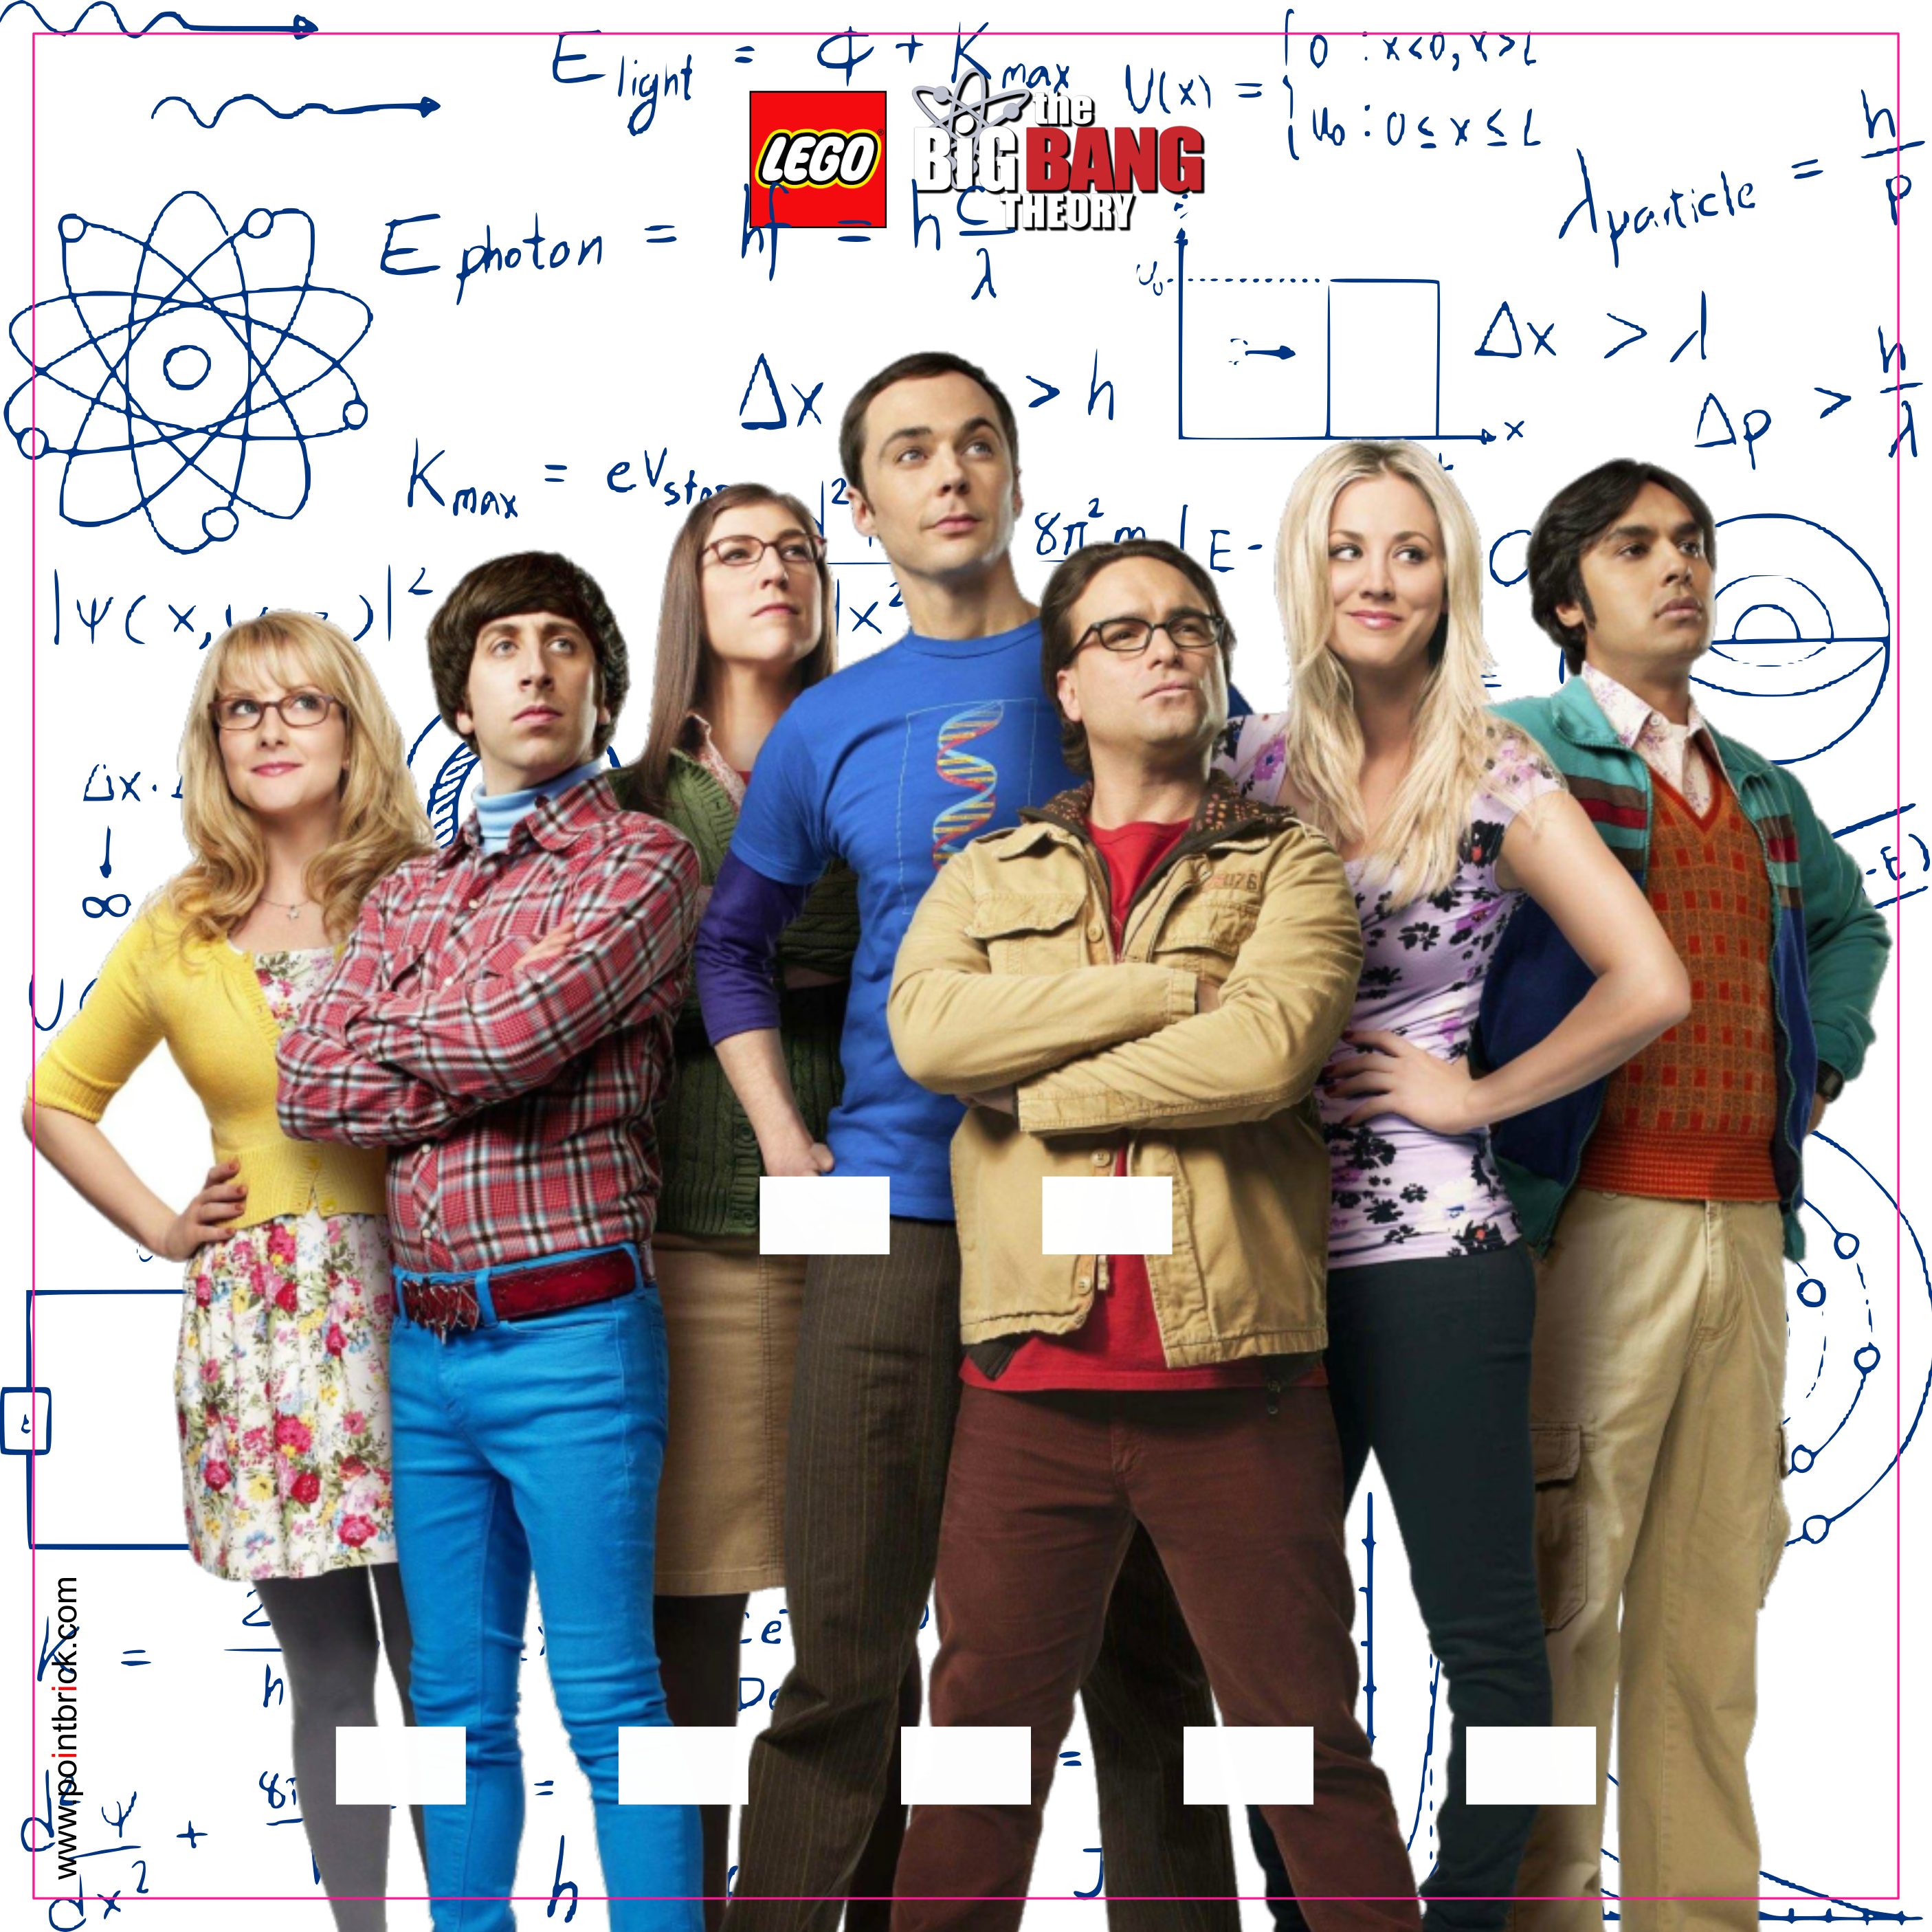 LEGO Minifigures Display Frame - Background 230mm The Big Bang Theory - Formula - Clicca sull'immagine per scaricarla gratuitamente!